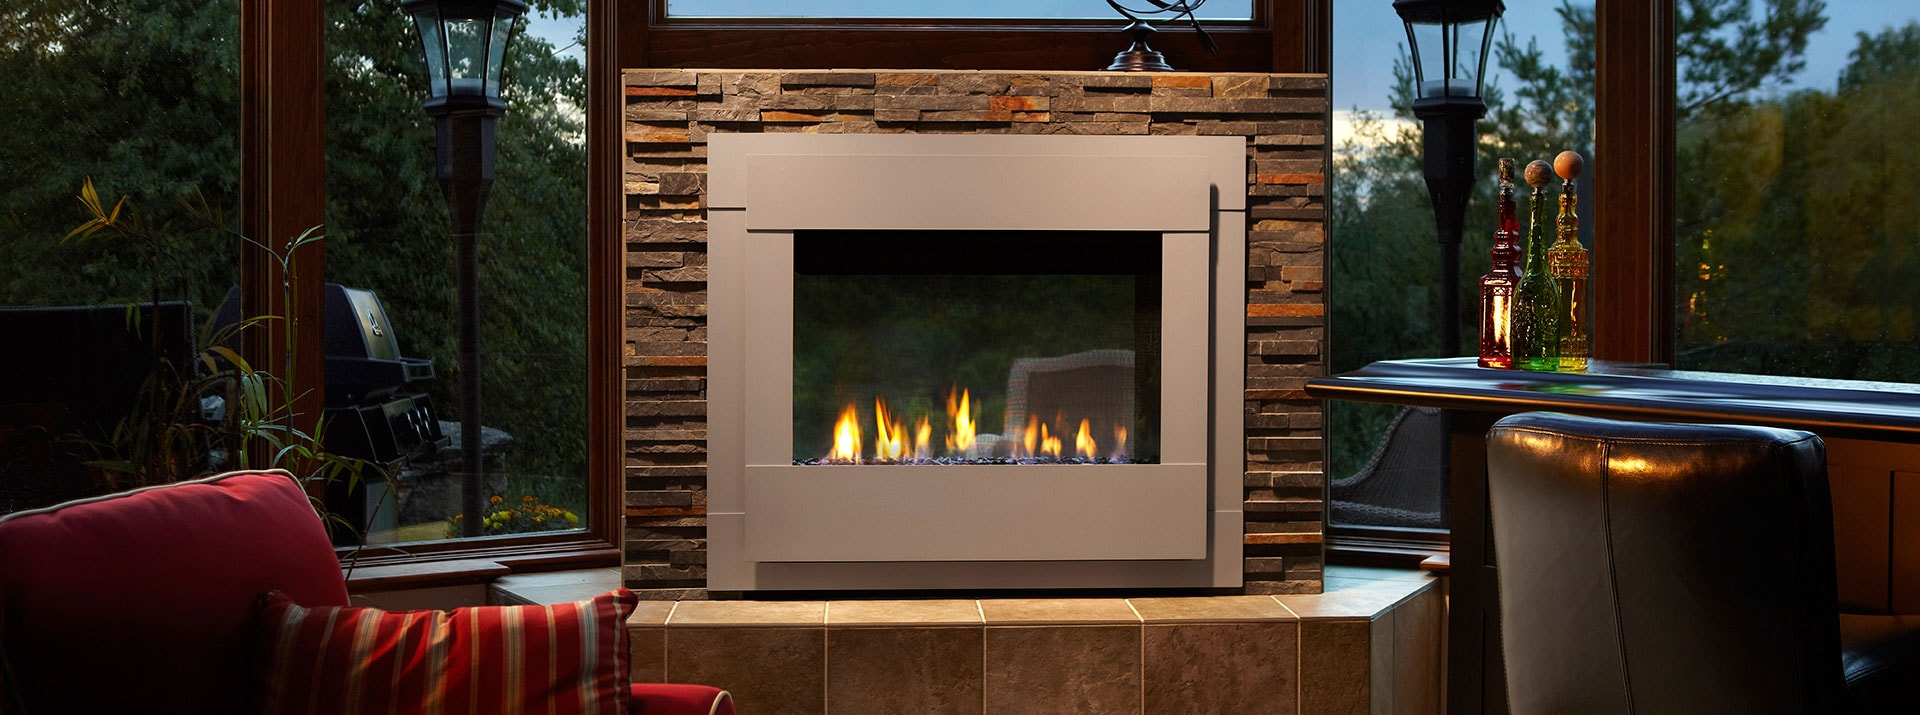 Outdoor lifestyles twilight modern gas outdoor fireplace monessen hearth for Interior exterior gas fireplace